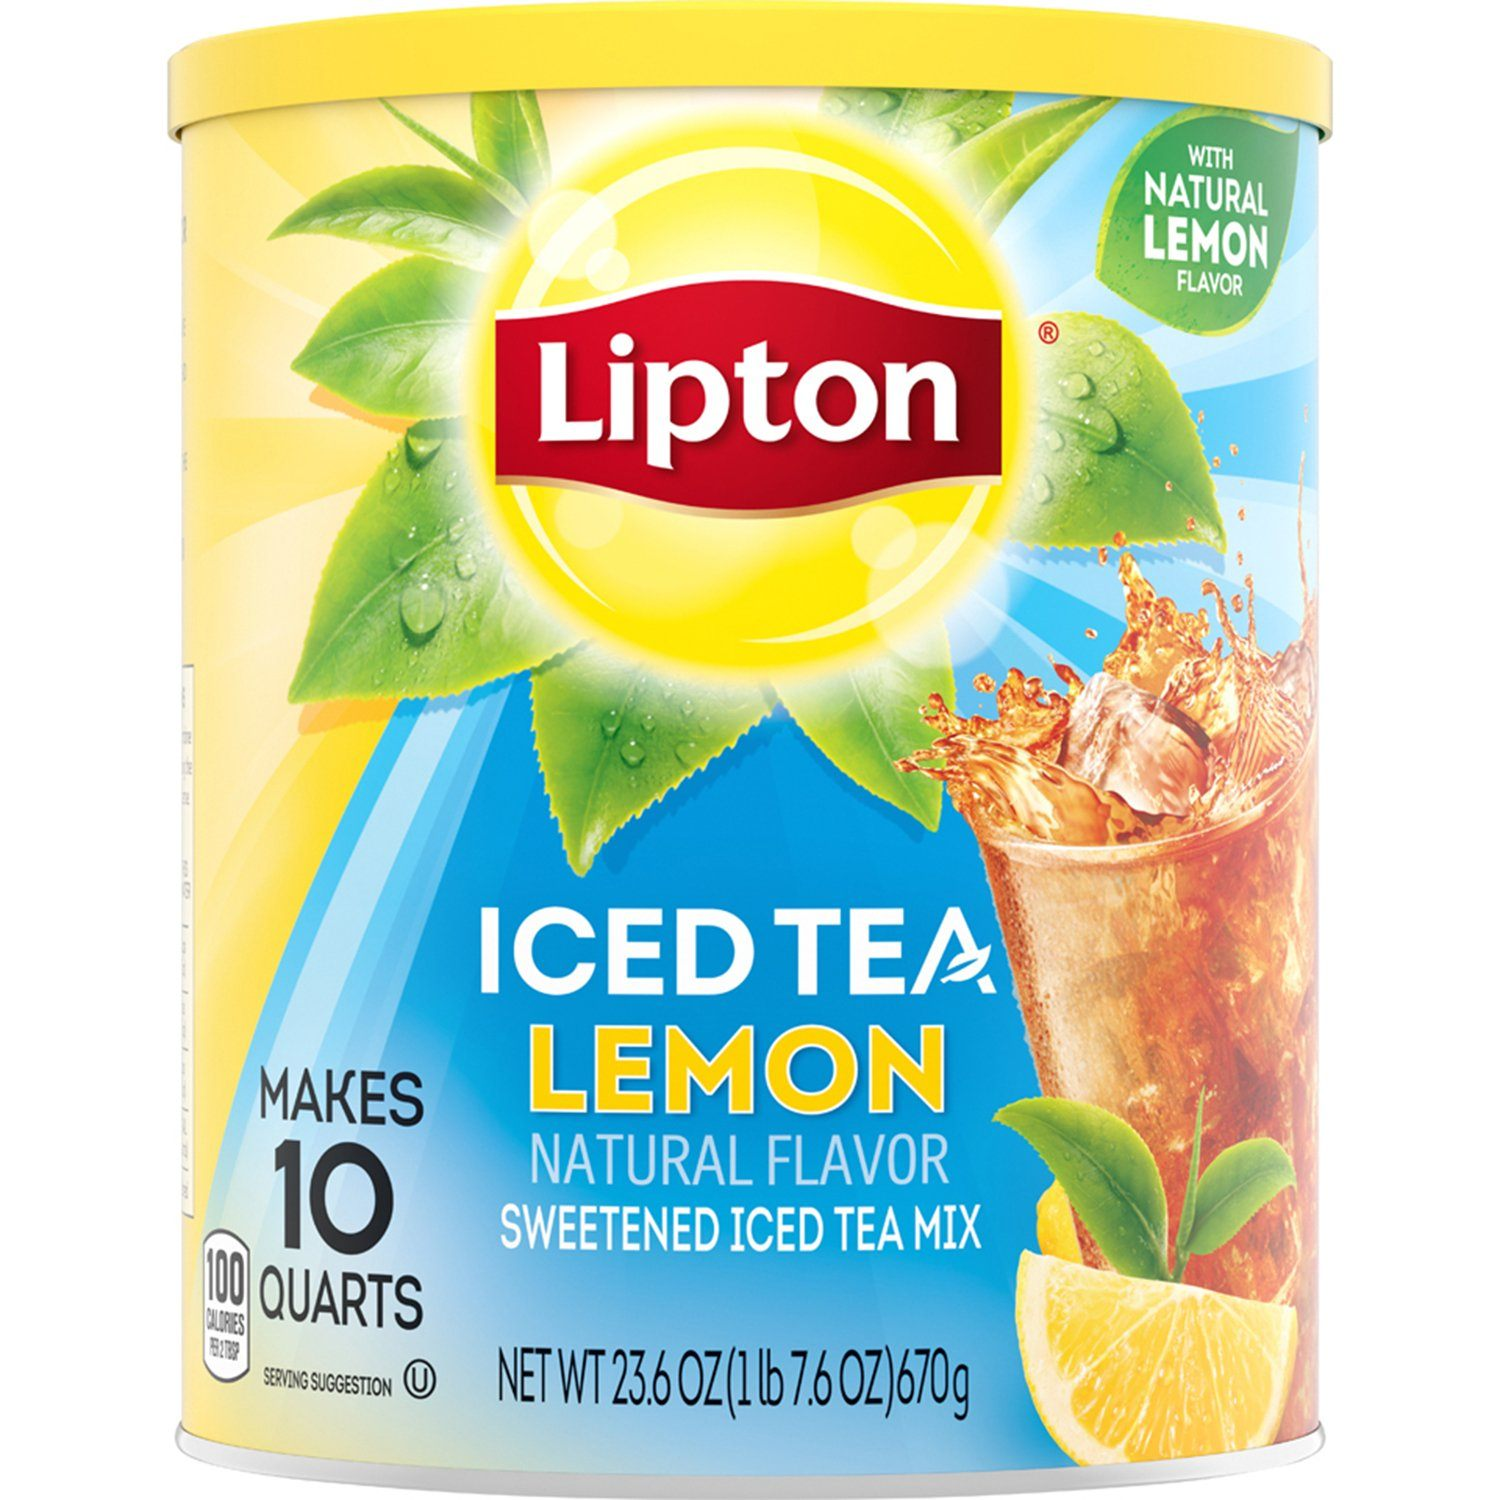 Lipton Iced Tea Mix Lipton Lemon 10 Quart - 23.6 Oz